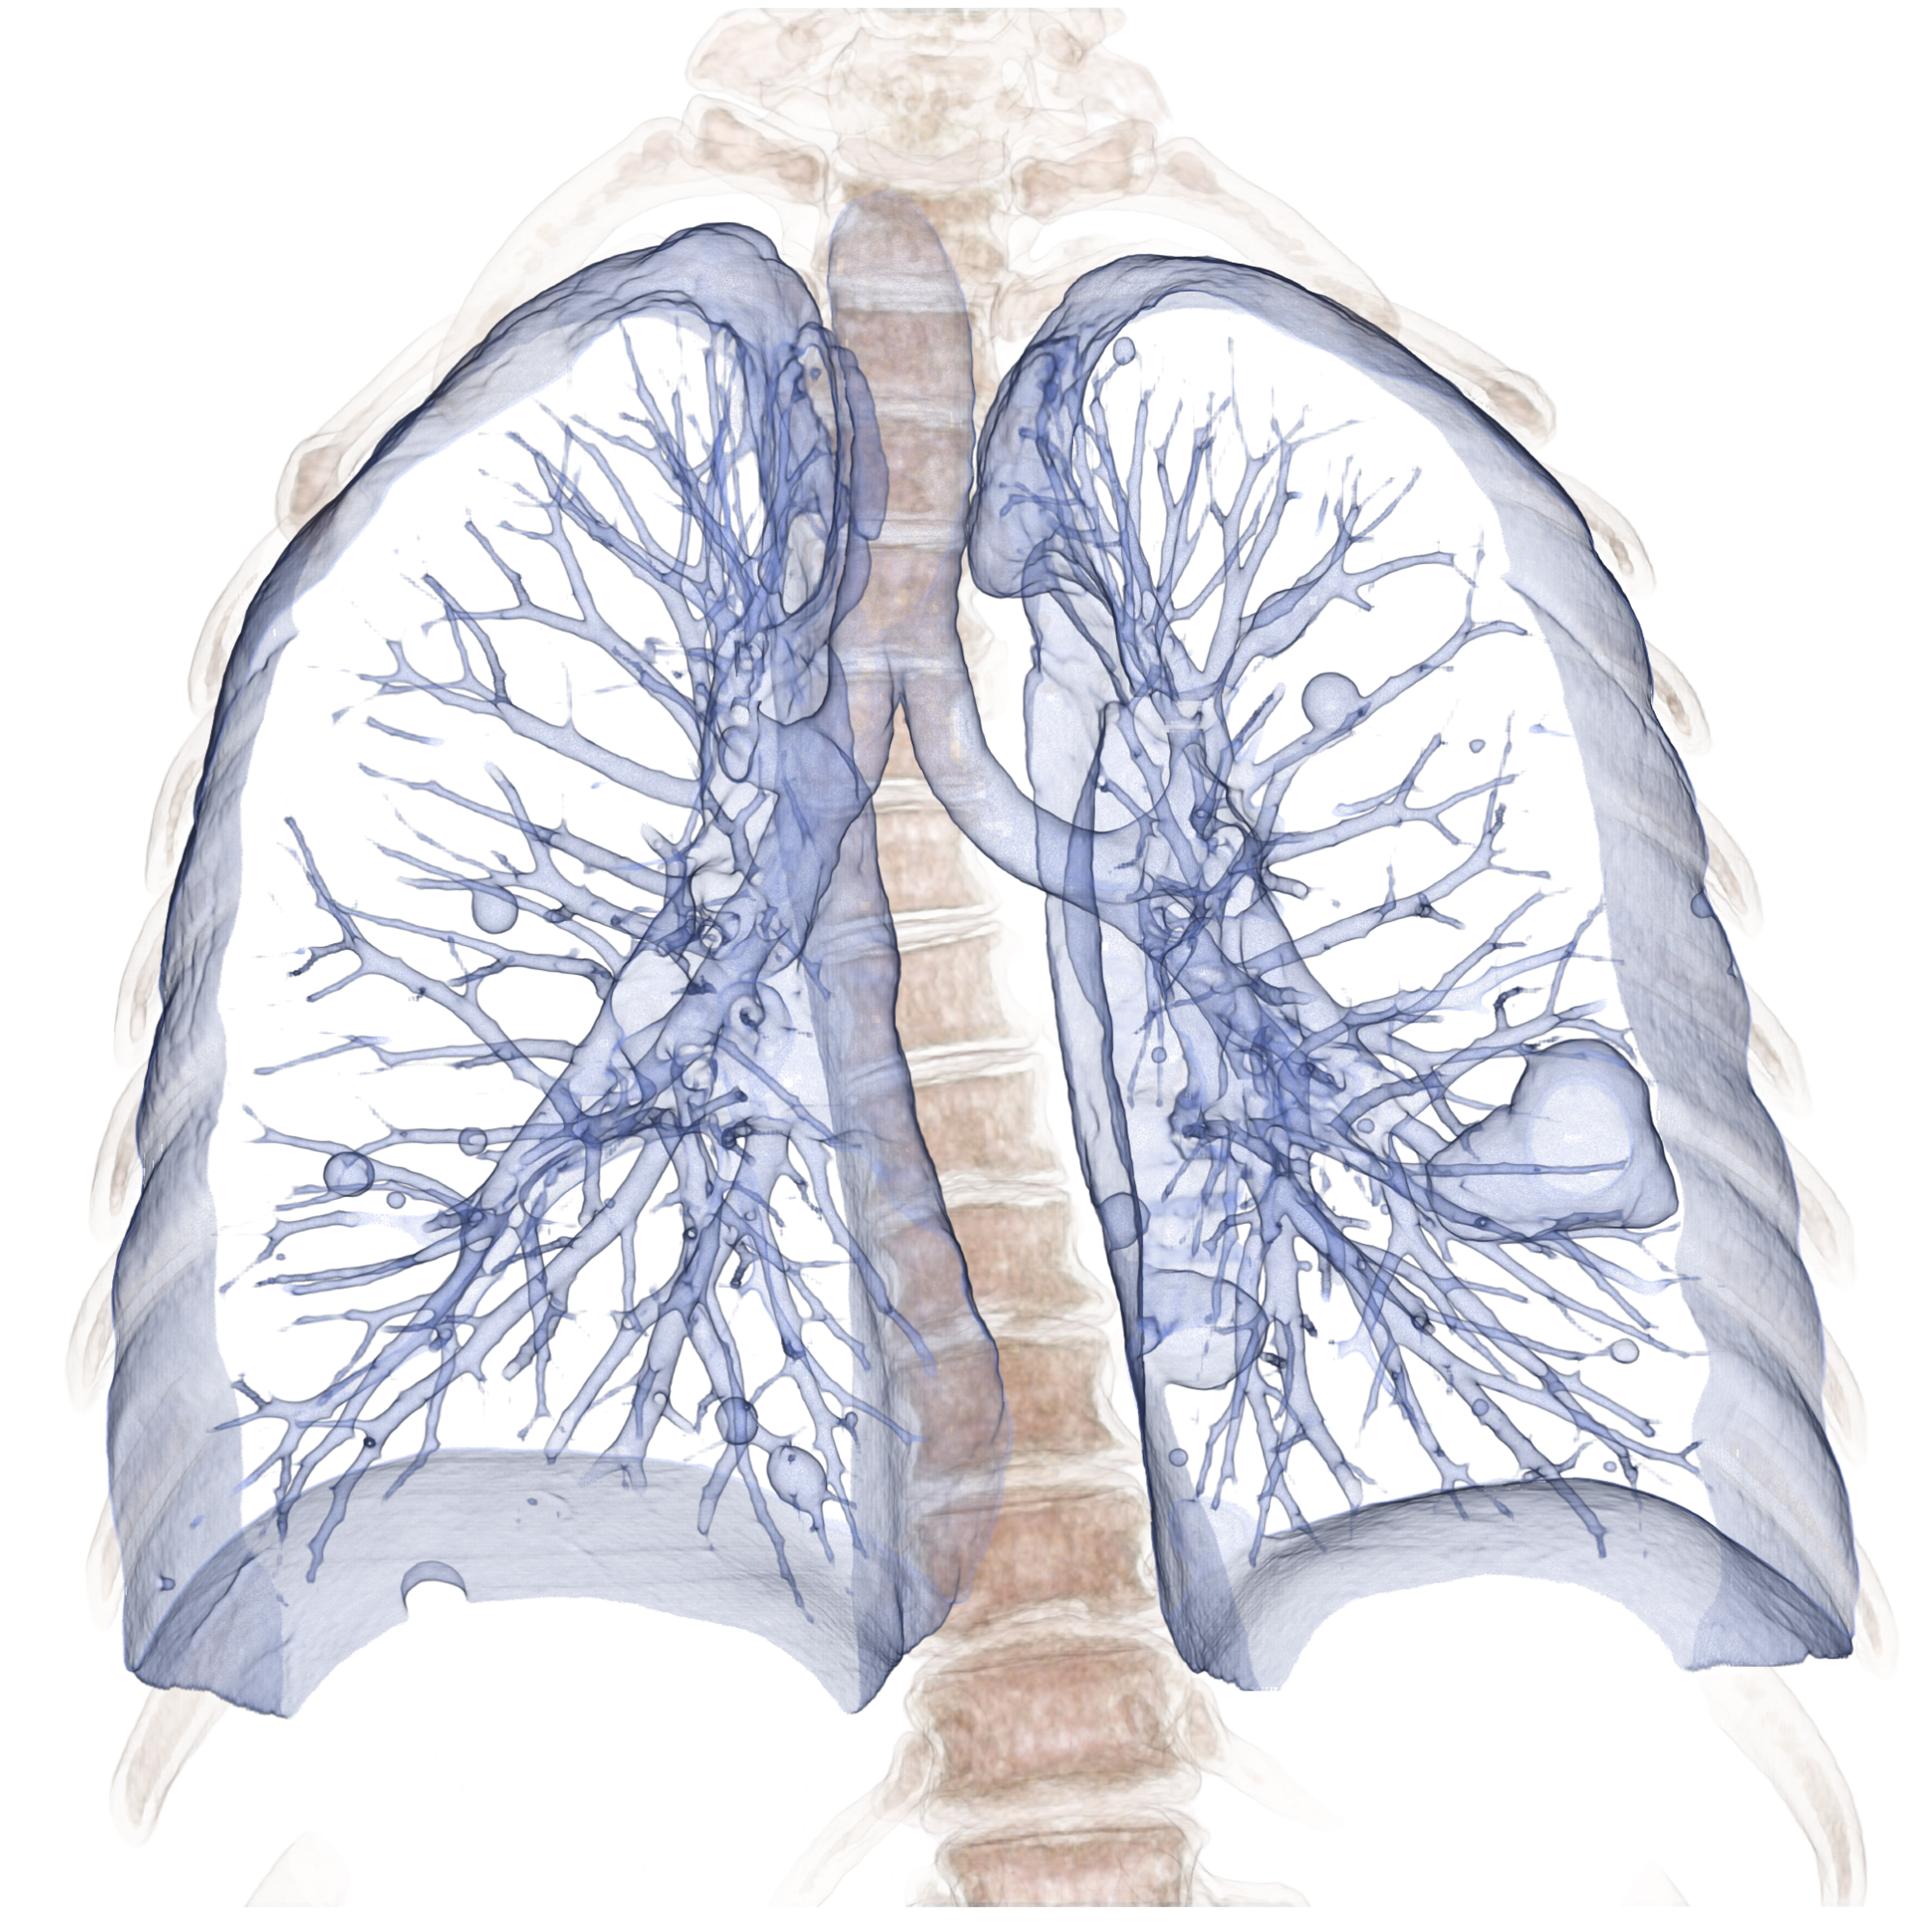 1_Lung